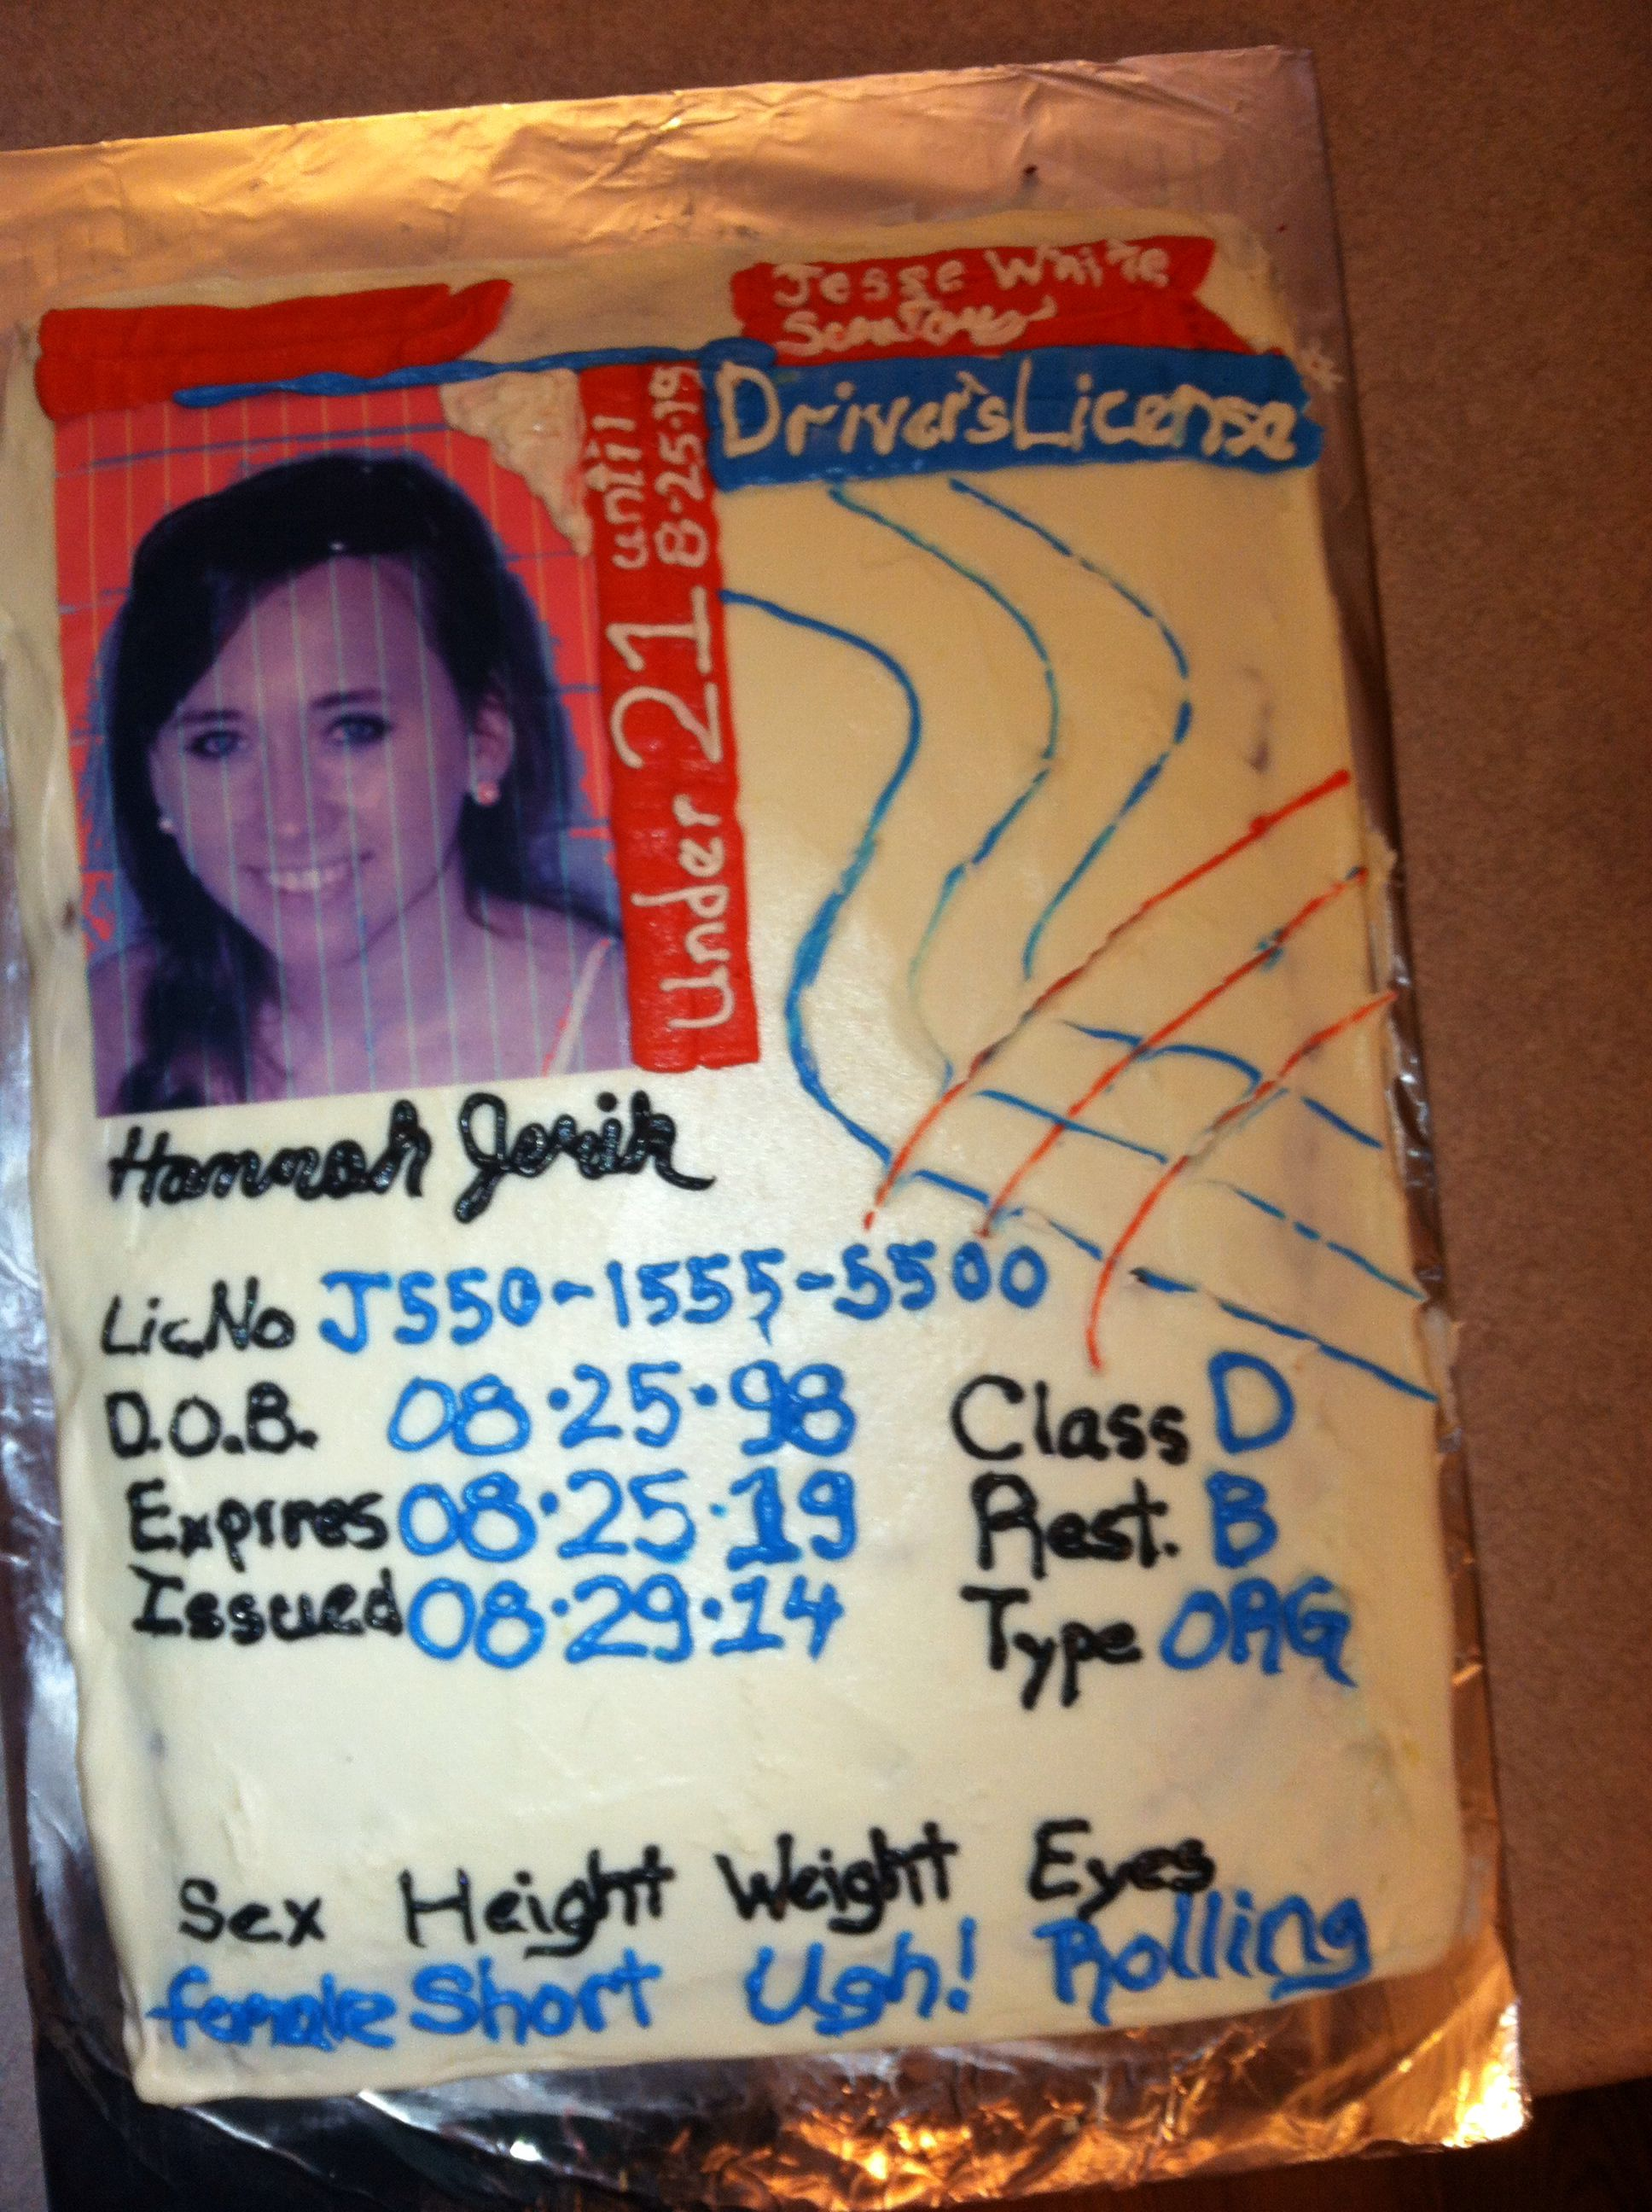 drivers license birthday cake for a 16 year old. | my posts